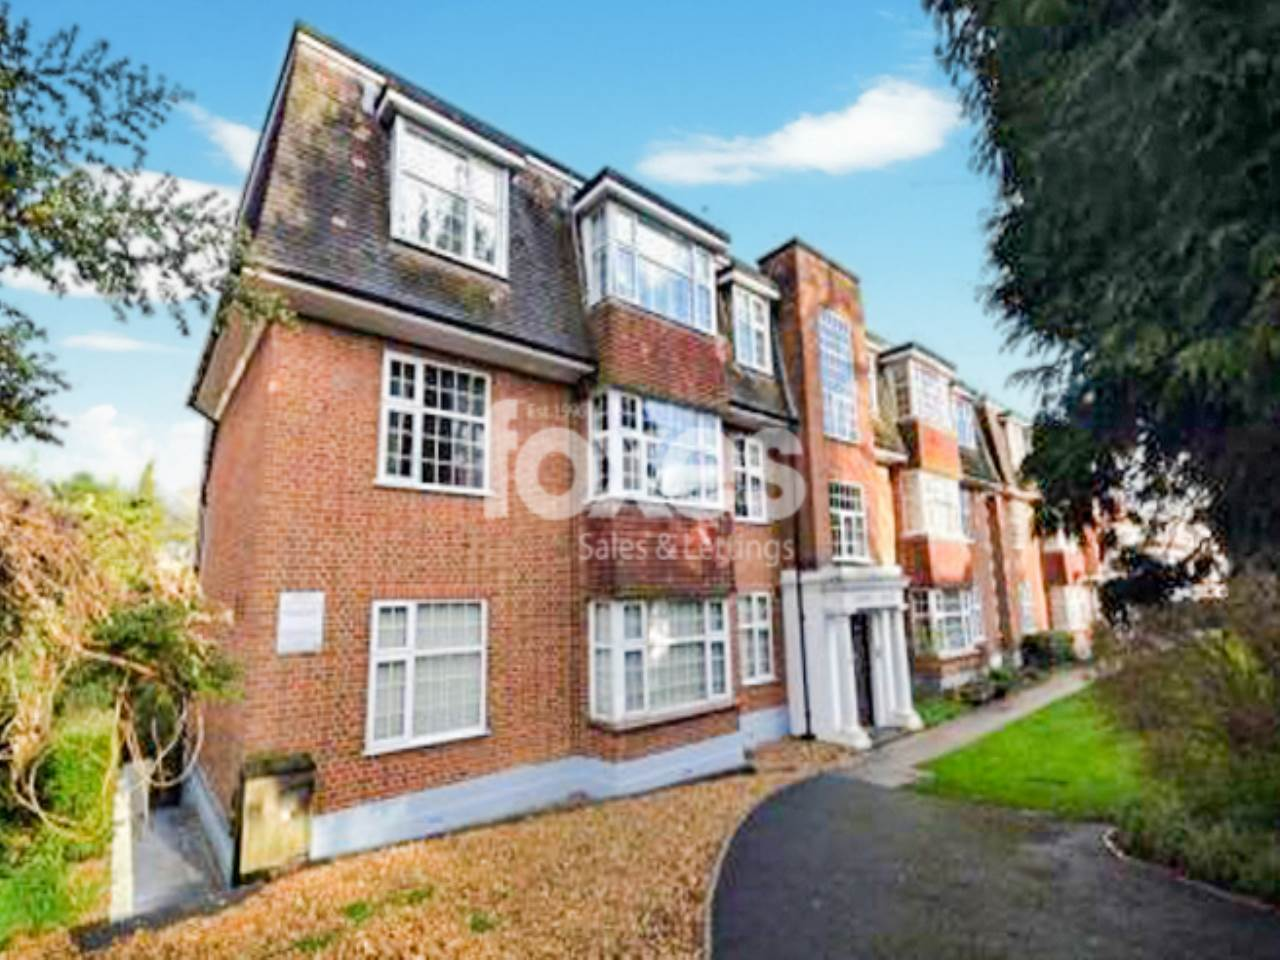 3 bed flat for sale in 19 Surrey Road, Bournemouth, BH4